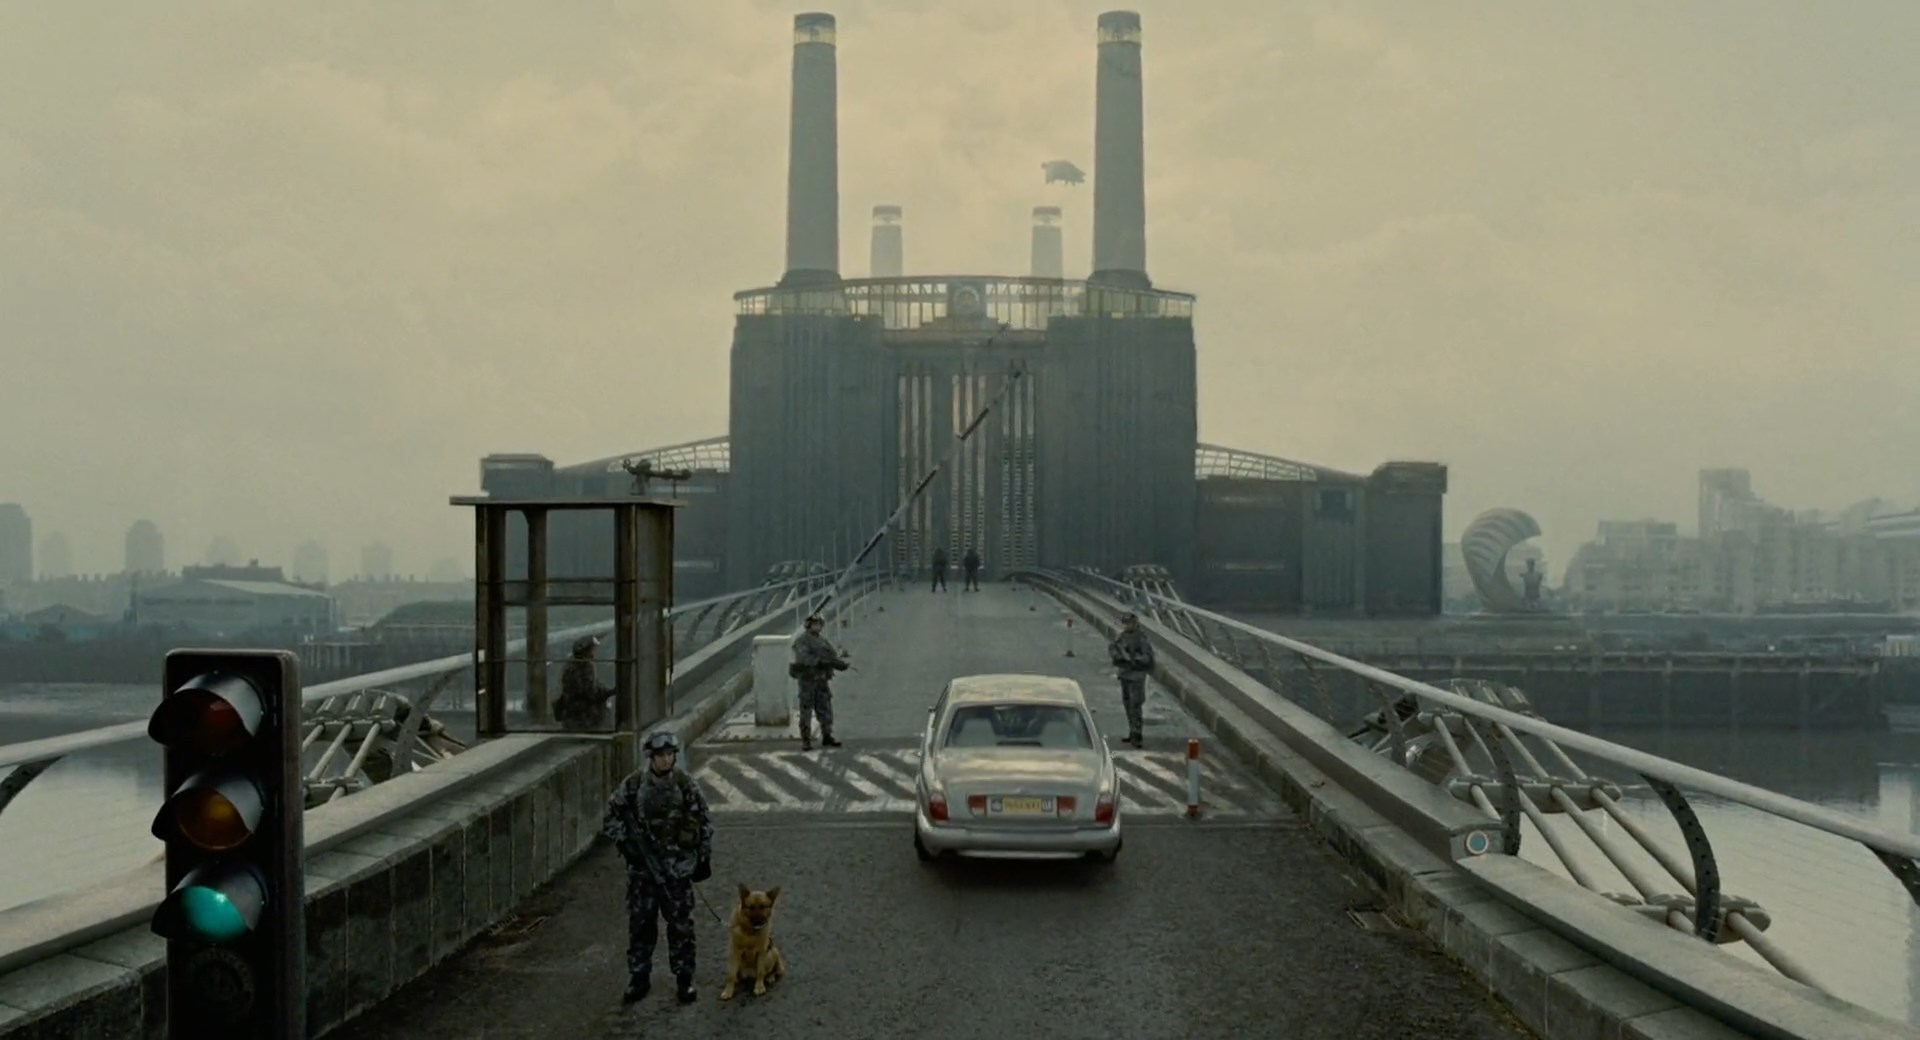 電影 Children of Men 劇照。